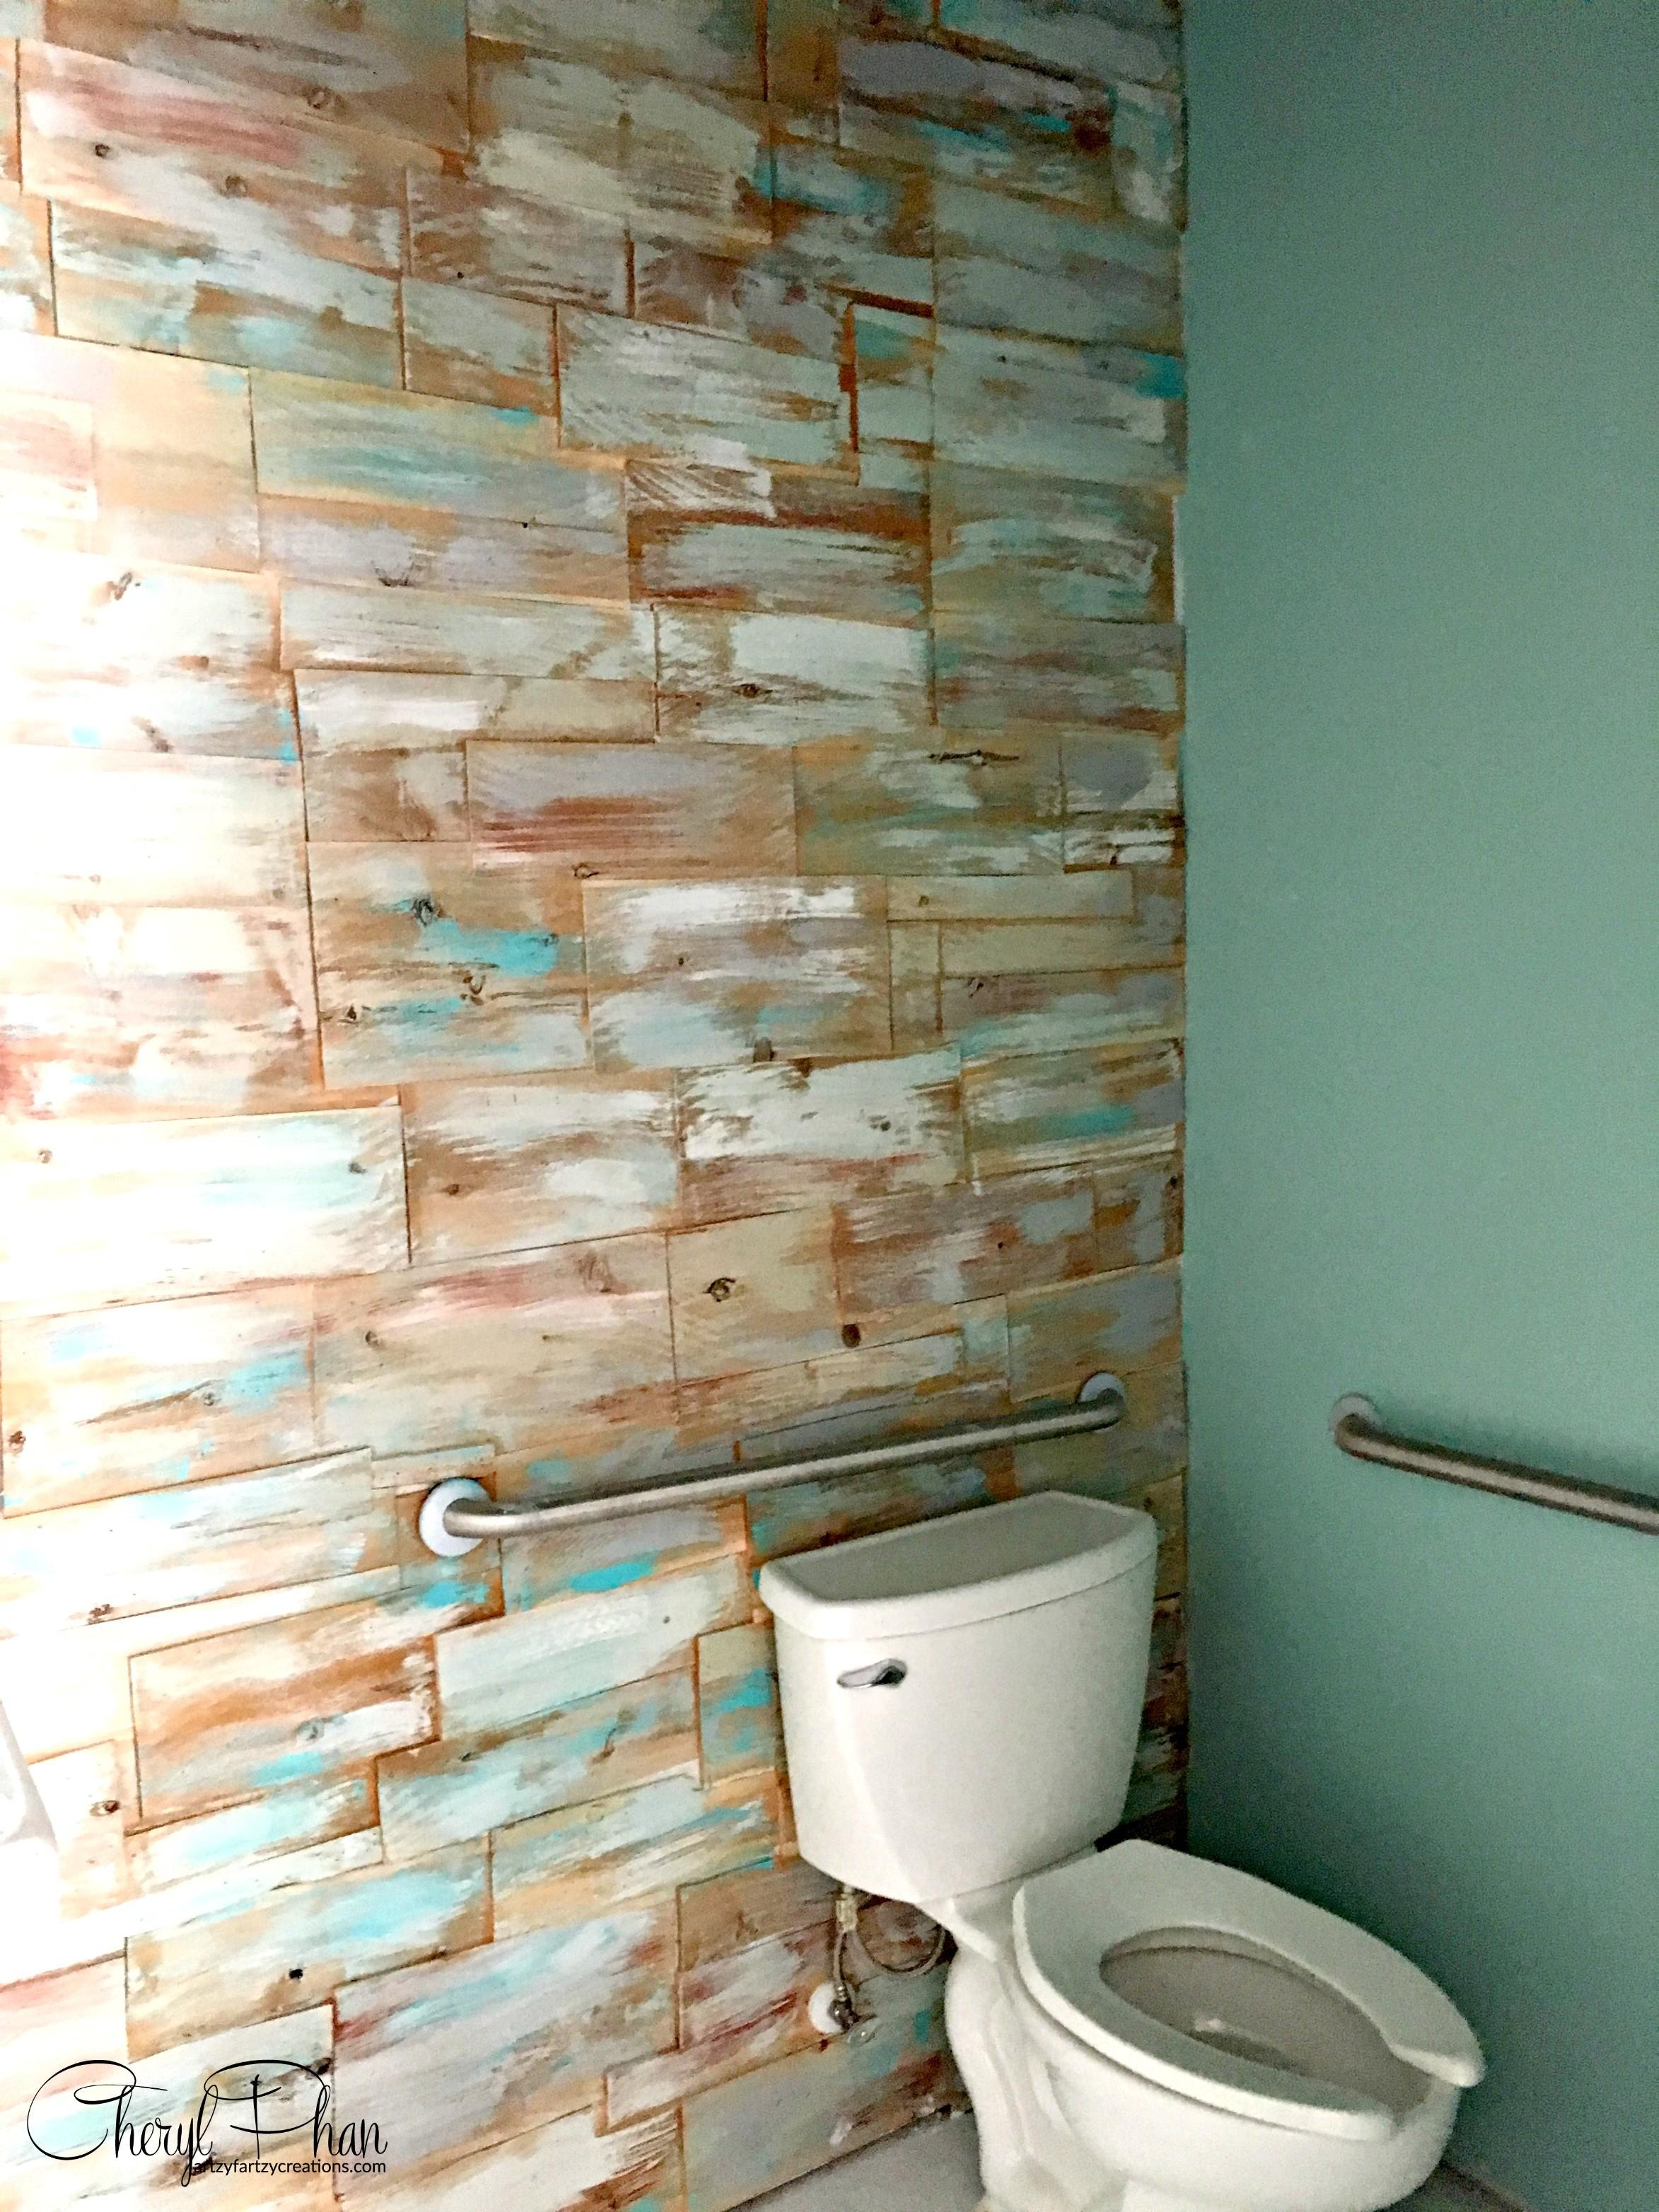 Diy Cedar Wall Wood Plank Accent Cheryl Phan